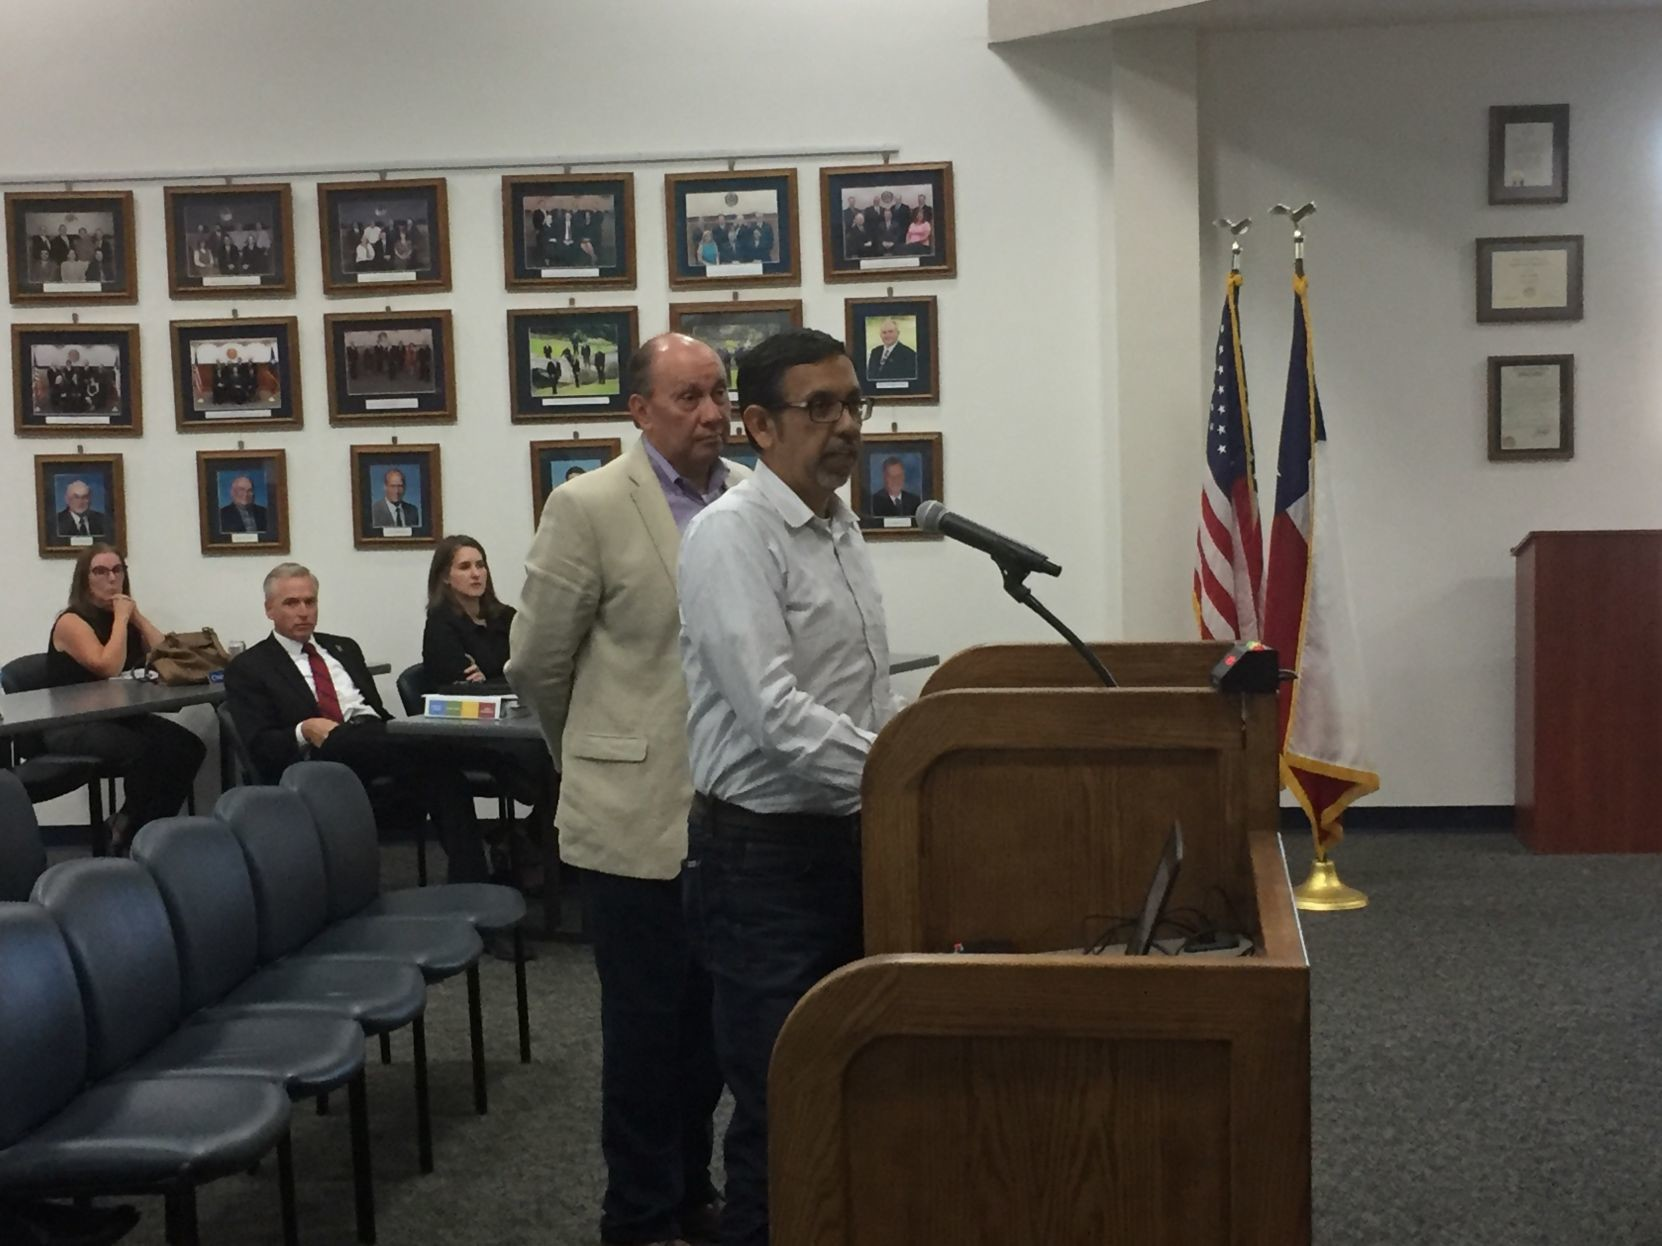 Javier Arguello, left, and Roberto Gonzalez briefed the Leander City Council Thursday on Metro's plans for rail service between Leander and Austin. The council was told track and station improvements will be finished by the middle of next year and additional new metro rail cars have arrived and are being tested.